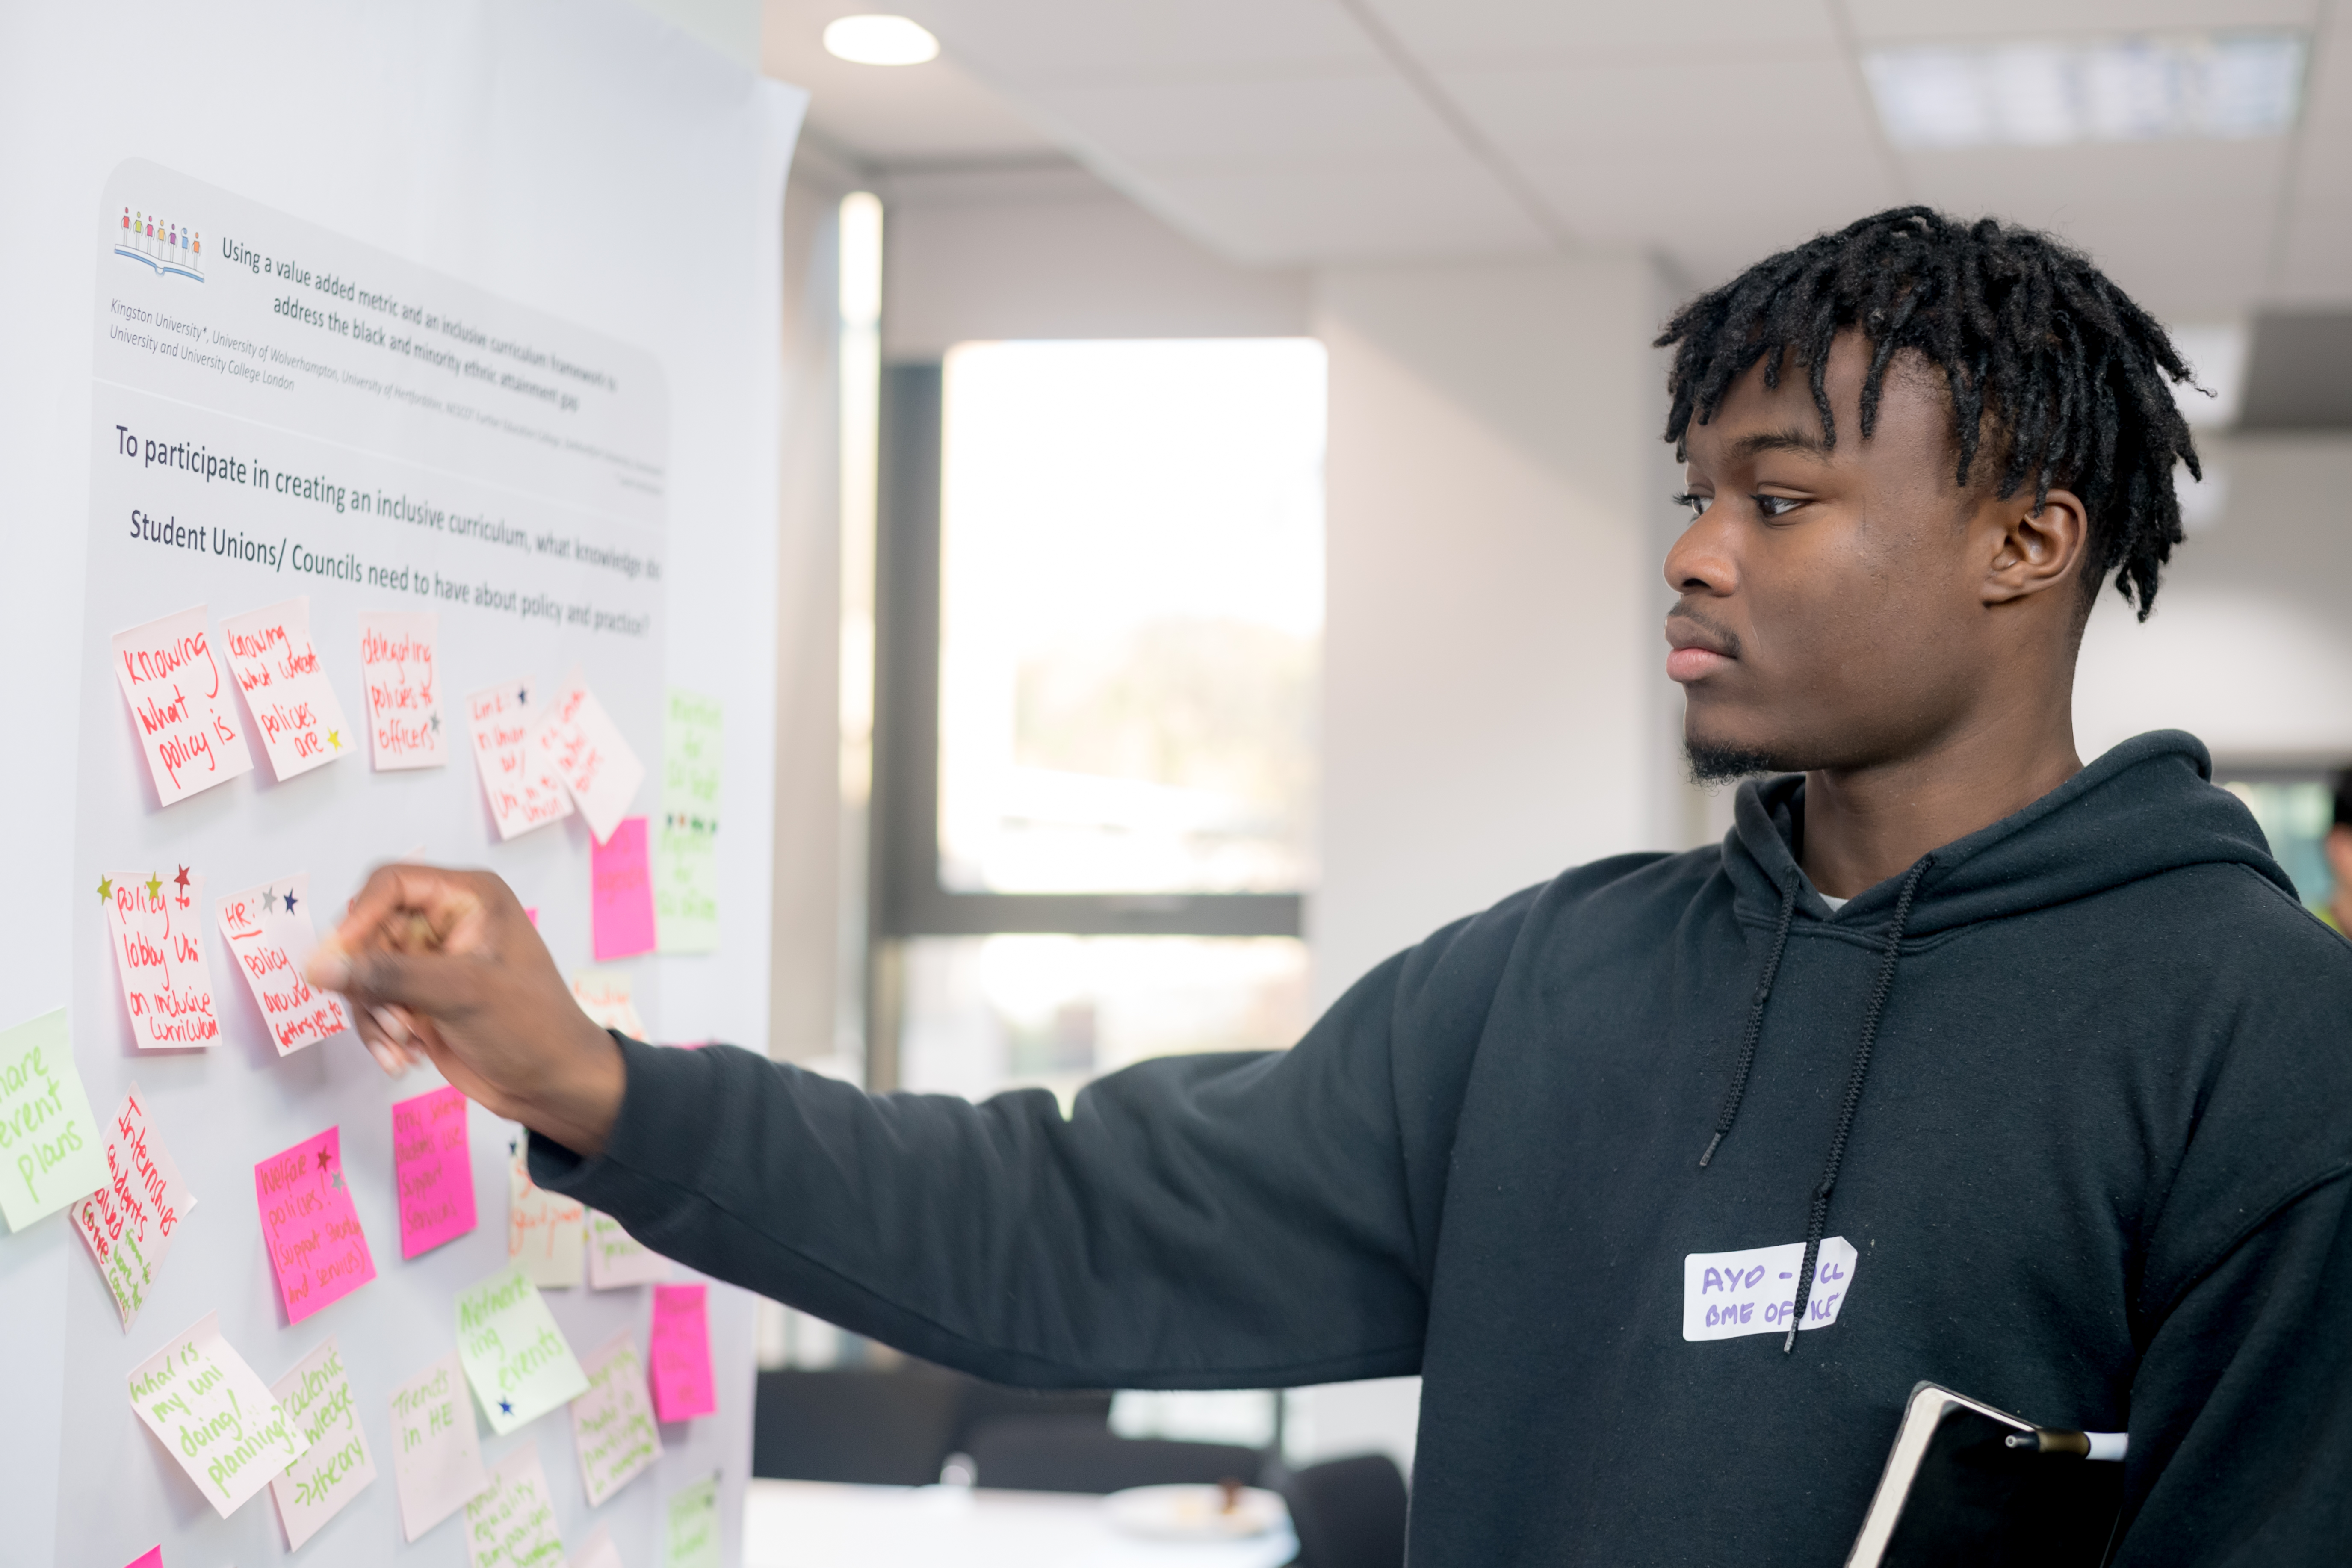 Student adding a post it note to a board